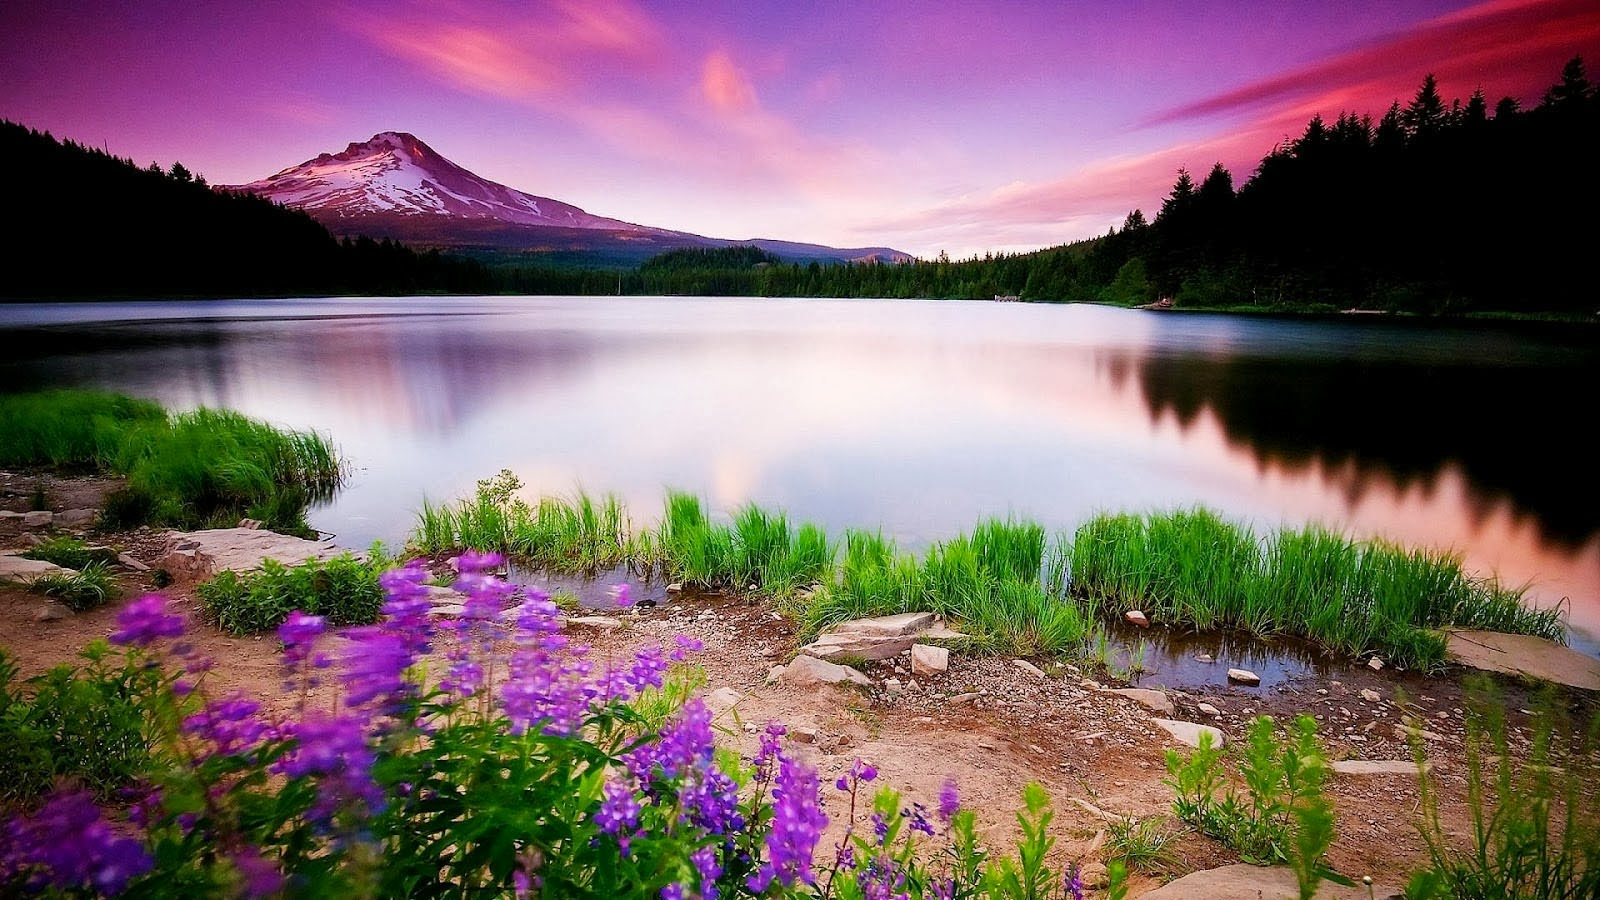 HD Size Nature Wallpapers Downloads Full HD Nature Wallpapers 1600x900